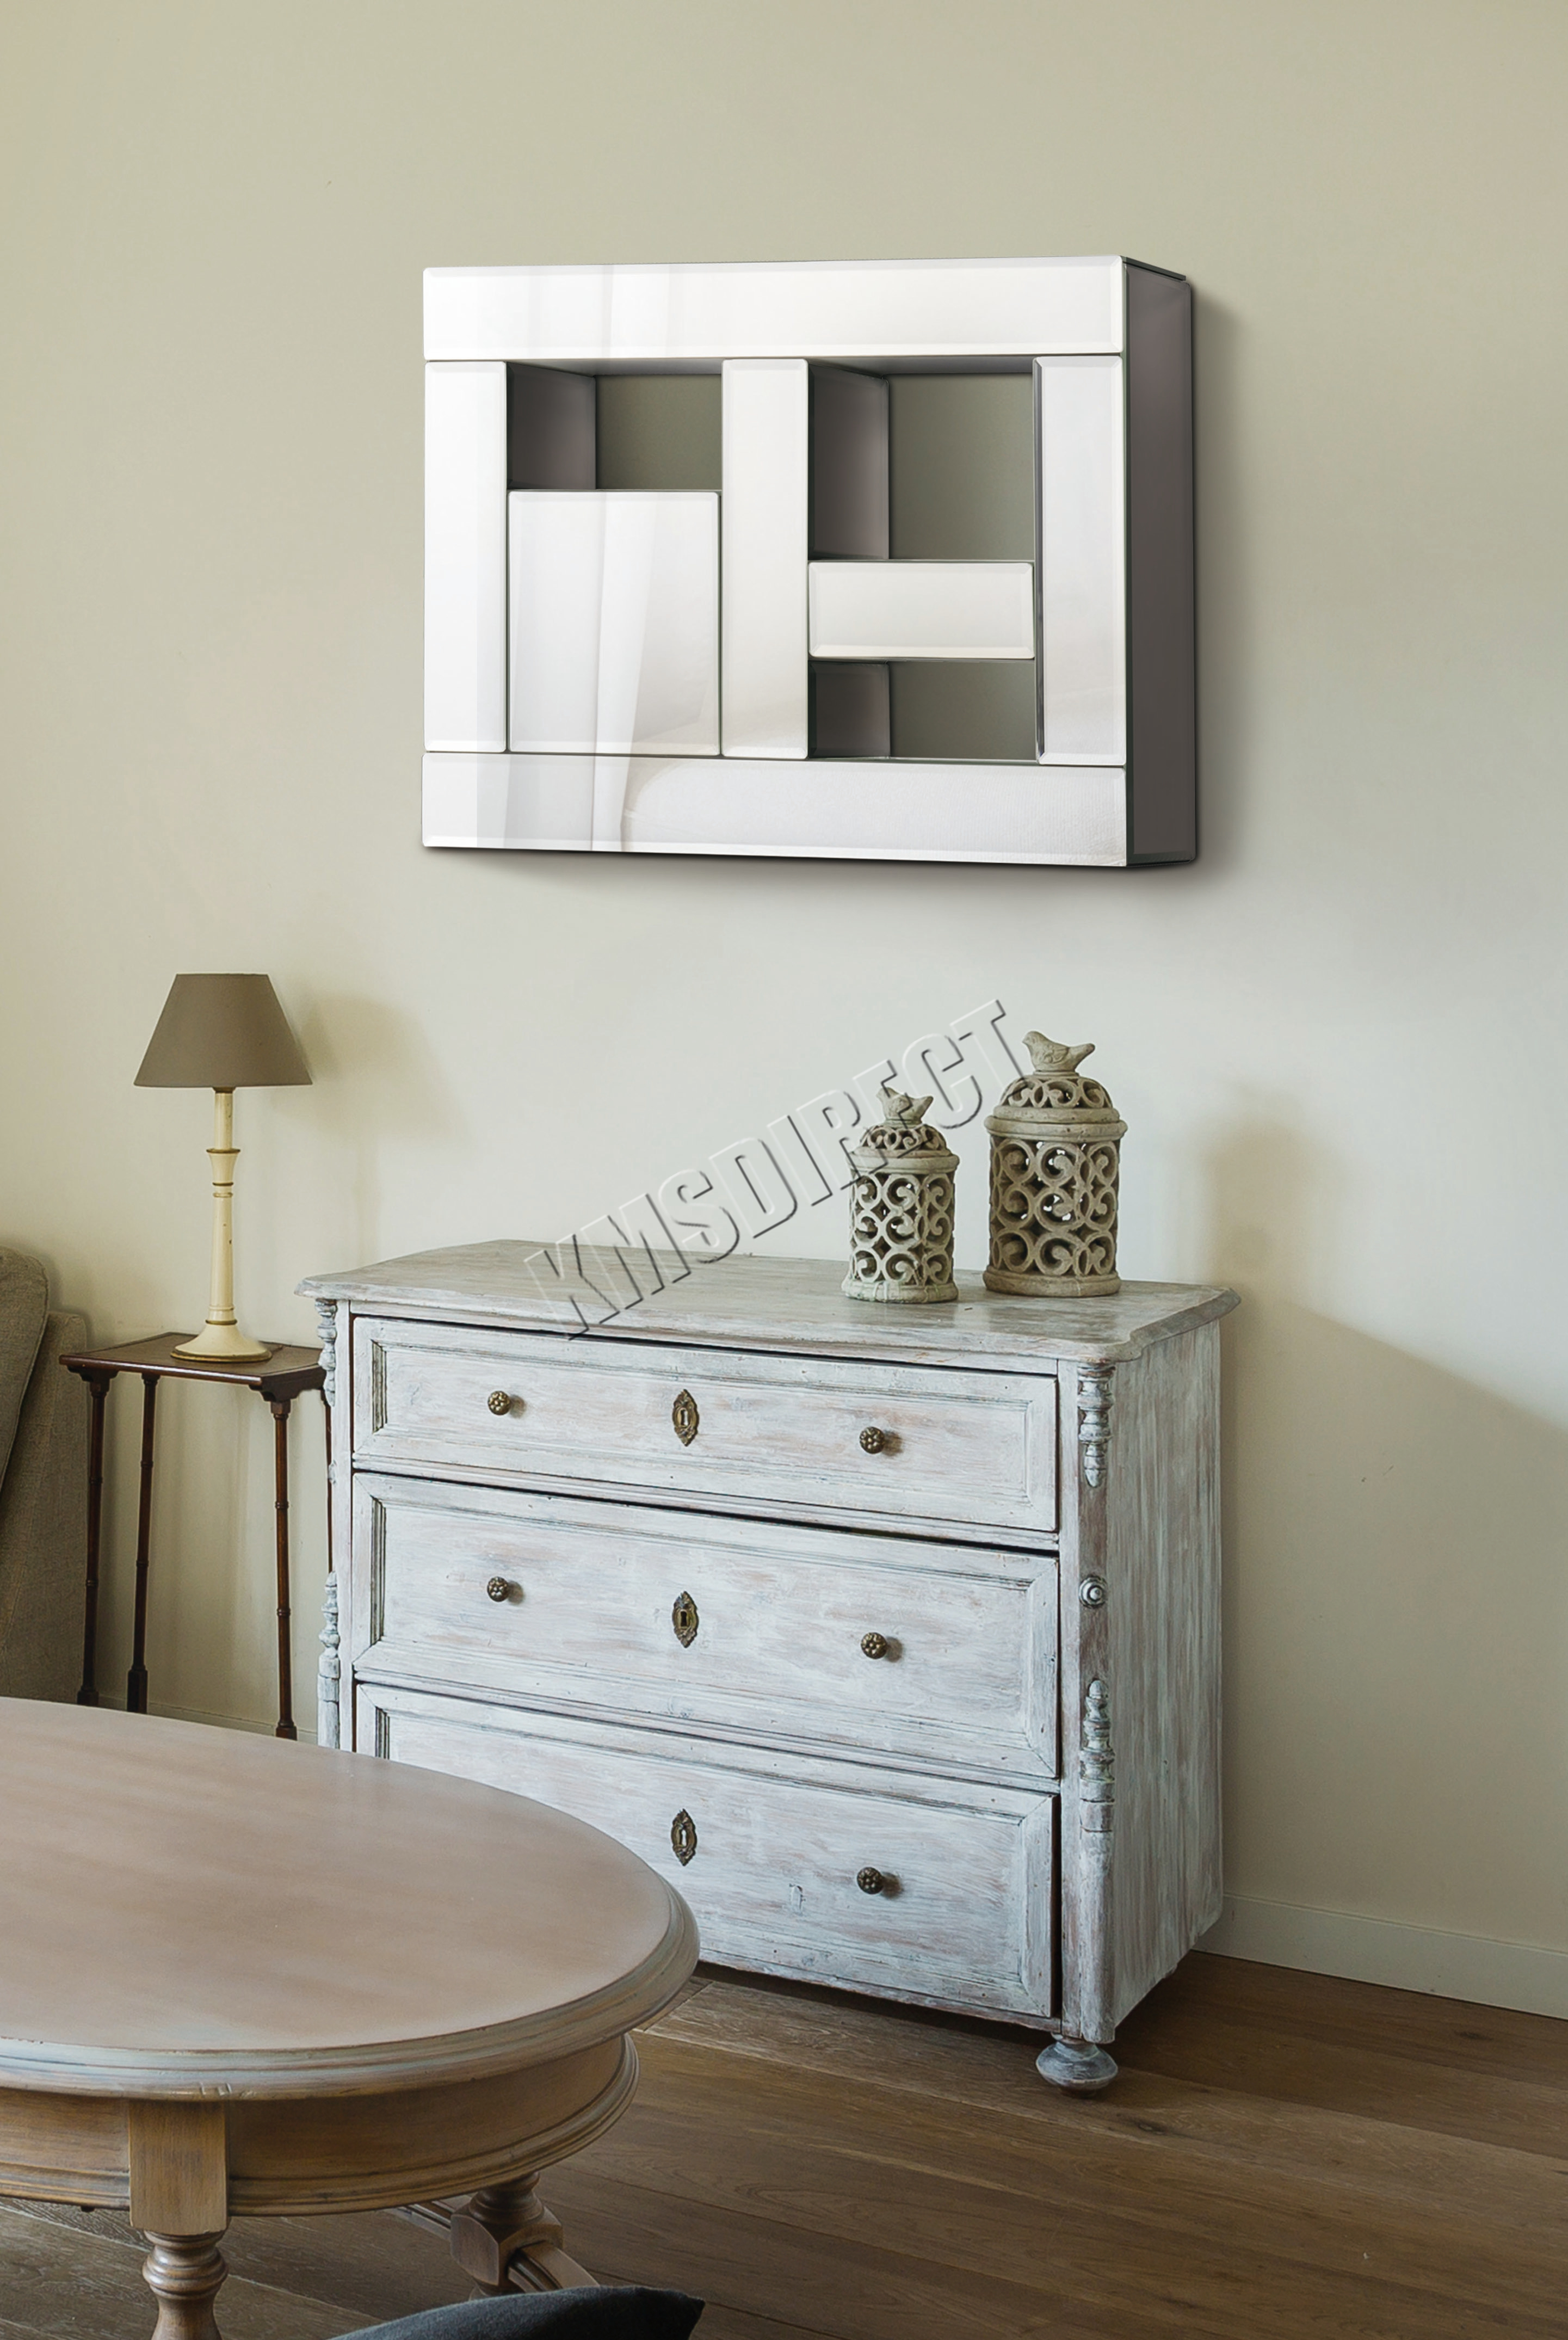 cupboard of mirrored about mirror on pinterest furniture copy bedroom ideas best glam